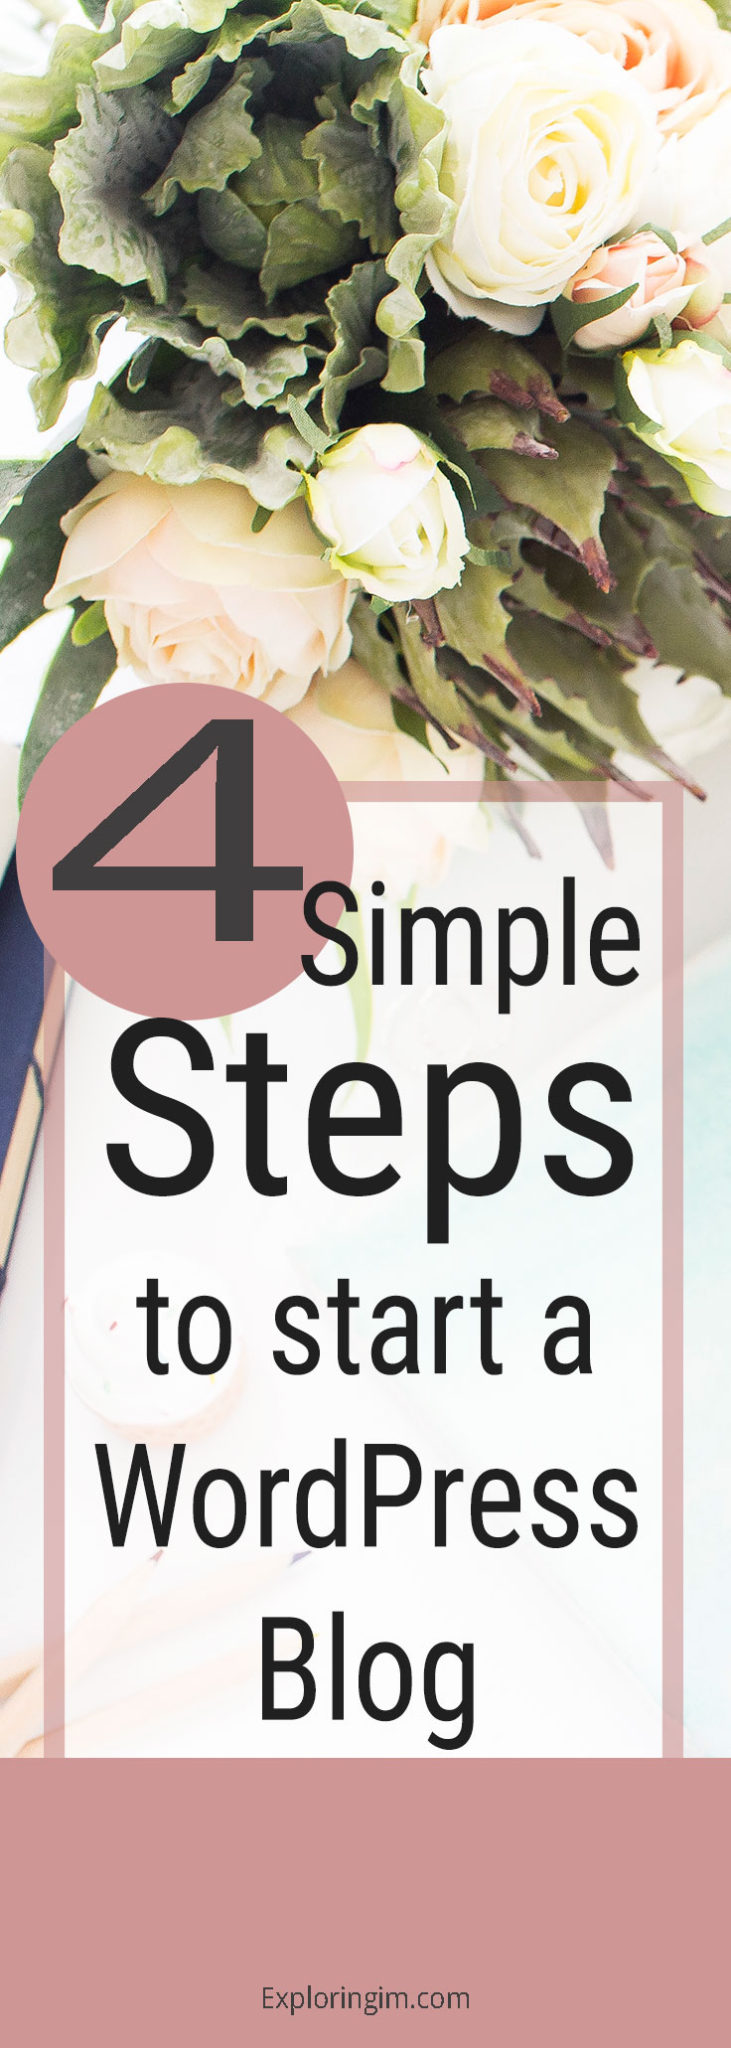 Blogging for beginners step by step tutorials